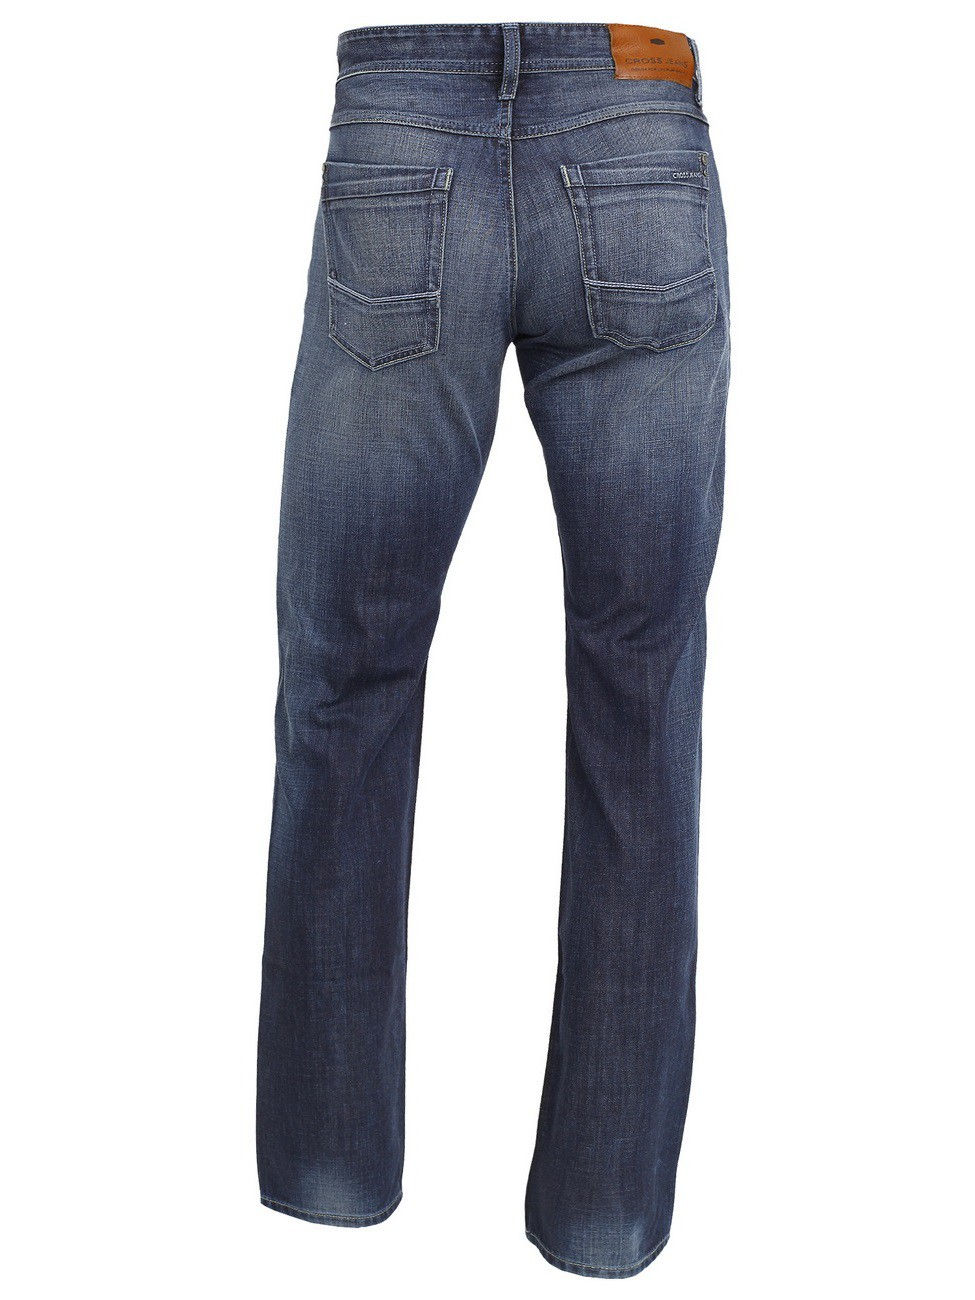 Cross Herren Jeans Antonio - Relax Fit - True Dark Blue Used